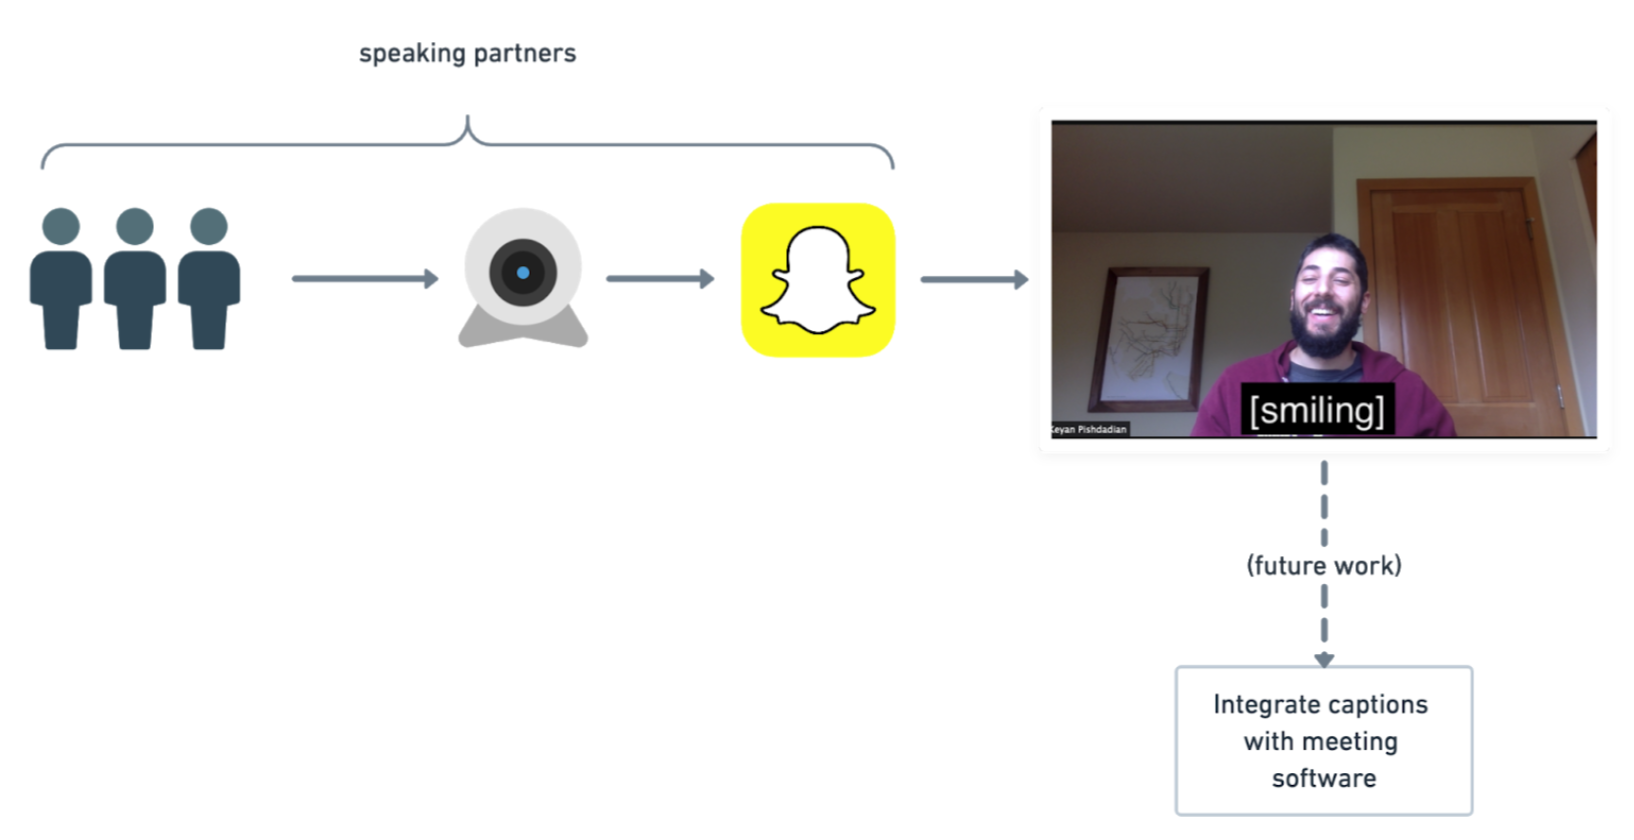 A diagram showing the flow of data in software system. On the left there are user icons with a right facing arrow towards a webcam, another arrow goes right from the webcam towards a snapchat application icon, another arrow goes right from the snapchat icon to a screenshot of a beared man in a zoom meeting. There is a brace above the user/webcam/snapchat icons with text that reads 'speaking partners'. The image of a zoom meeting shows a beared man smiling and white text on a black background that reads '[smiling]'. There is a dotted arrow pointing downwards from the meeting image that is labeled 'future work', it points to a box which reads 'integrate captions with meeting software'.